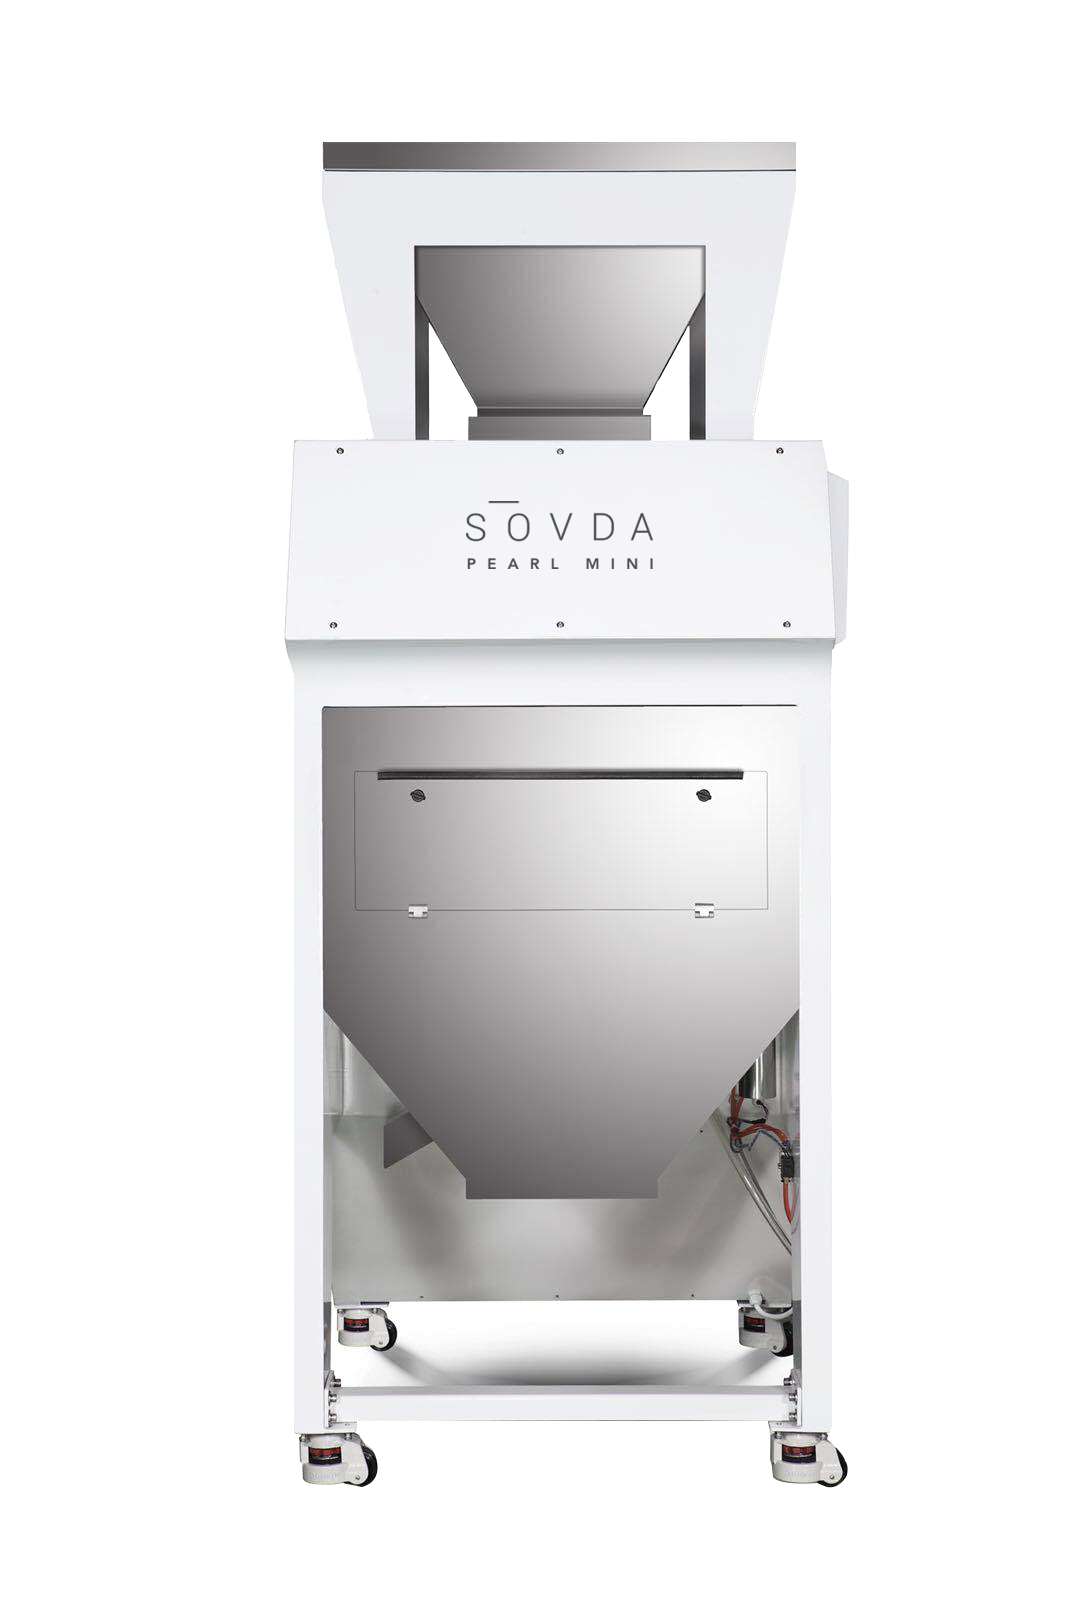 Coffee sorting has a new standard. This is the SOVDA Pearl Mini. Engineered for high efficiency and next level quality control. -